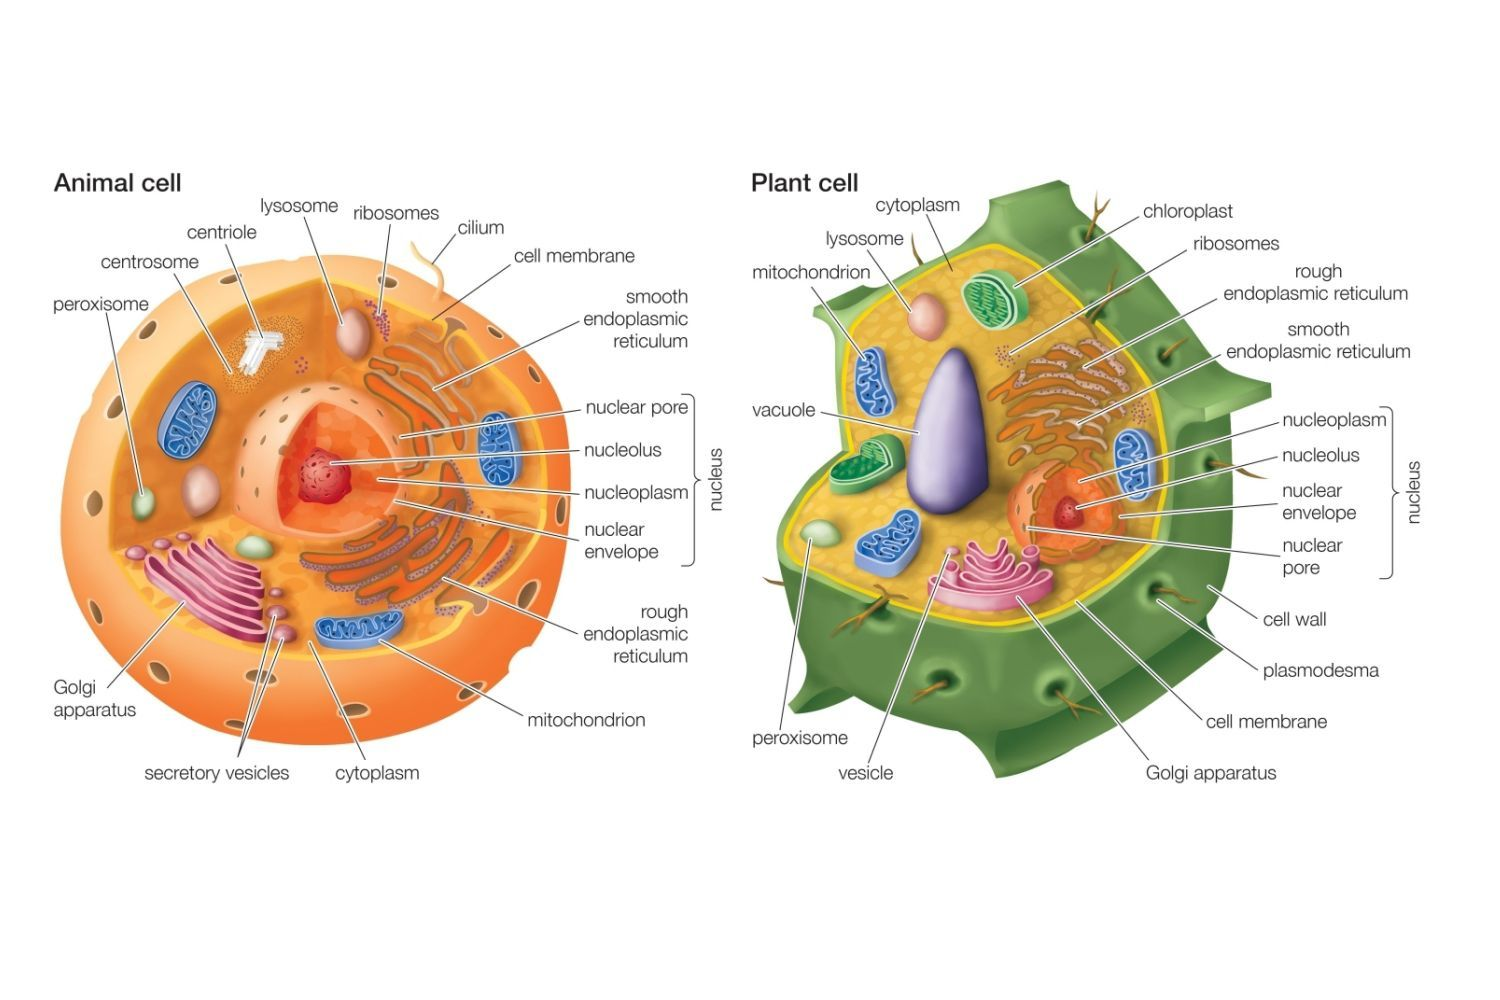 Differences Between Plant And Animal Cells With Images